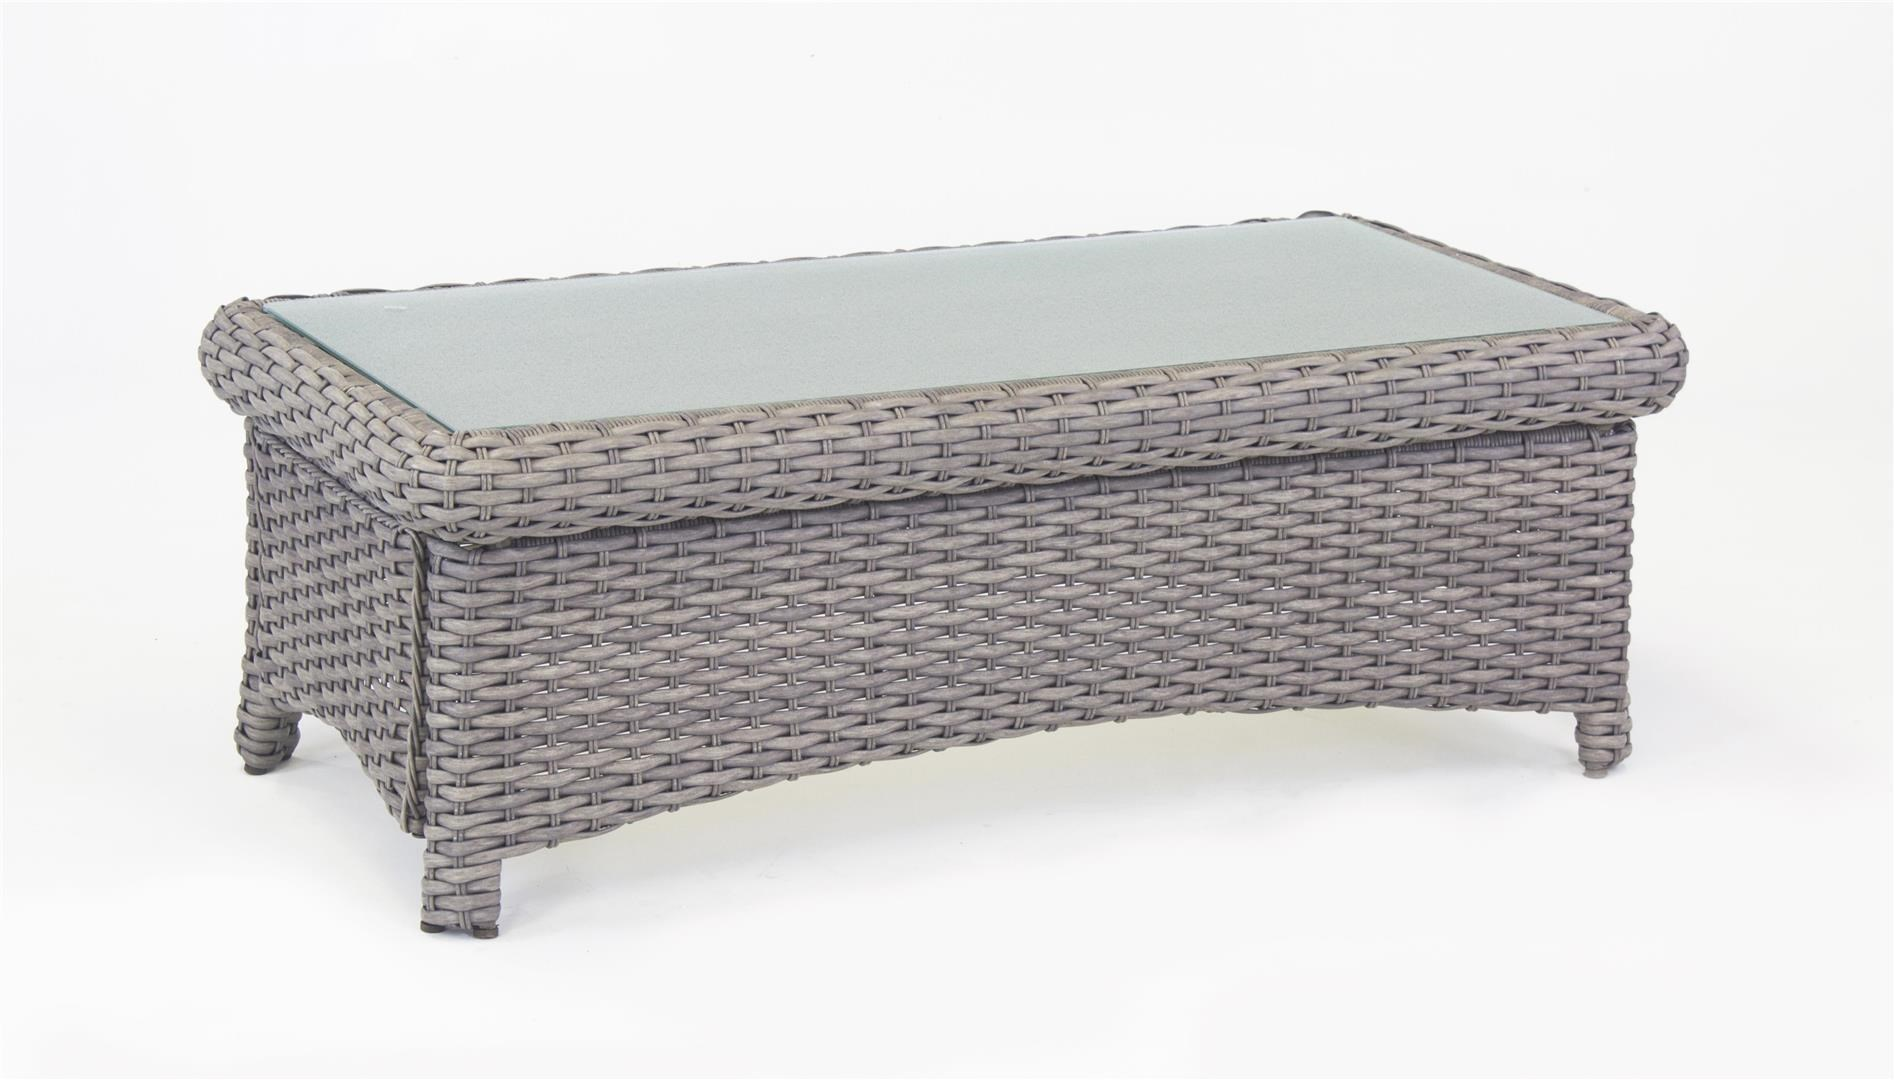 Rattan Table Saint Tropez 2016 St Tropez Coffee Table By South Sea Rattan Wicker At Johnny Janosik